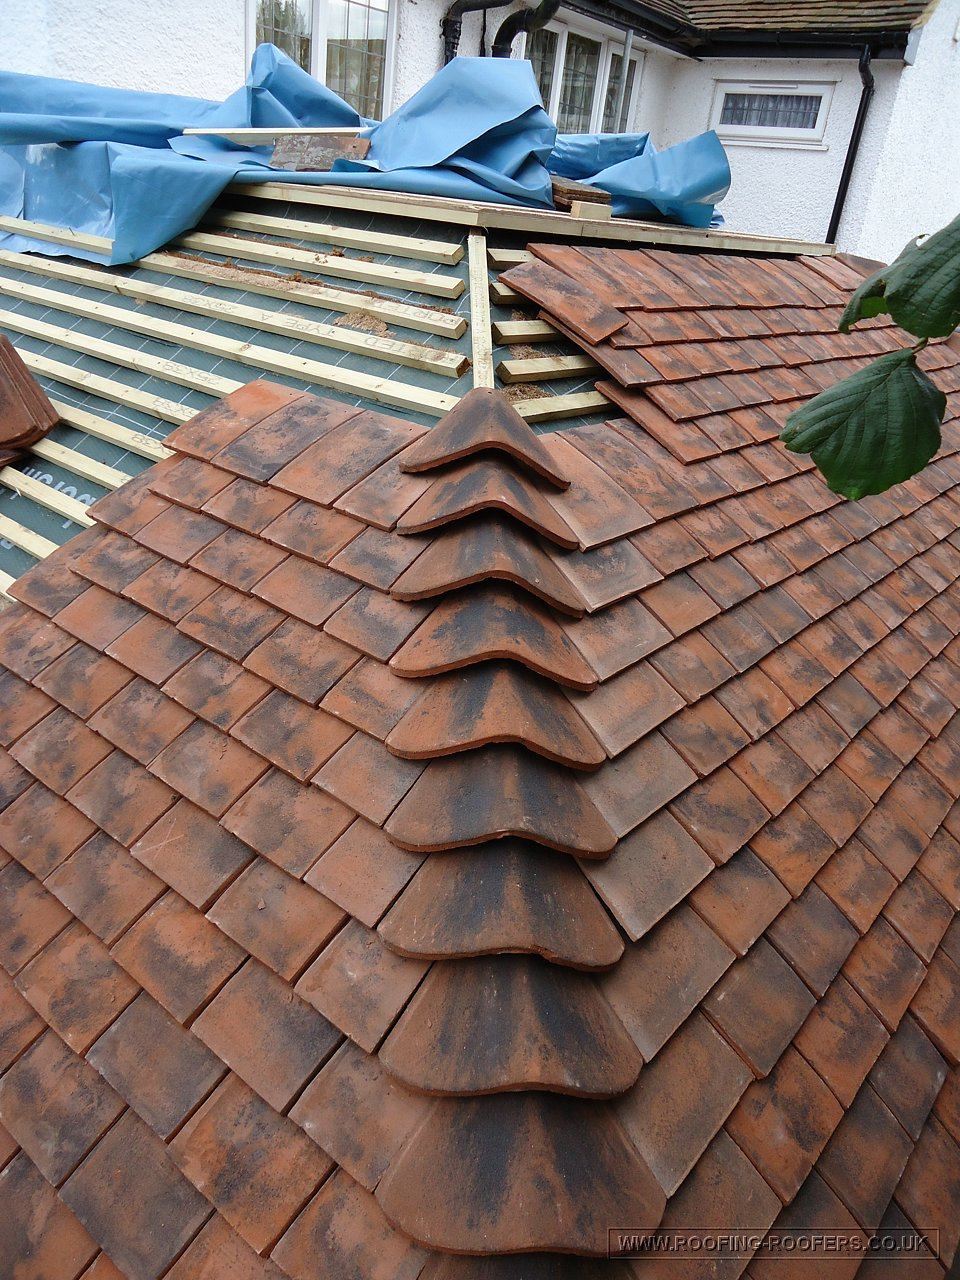 Lead Work Roofing And Building Repairs Specialists